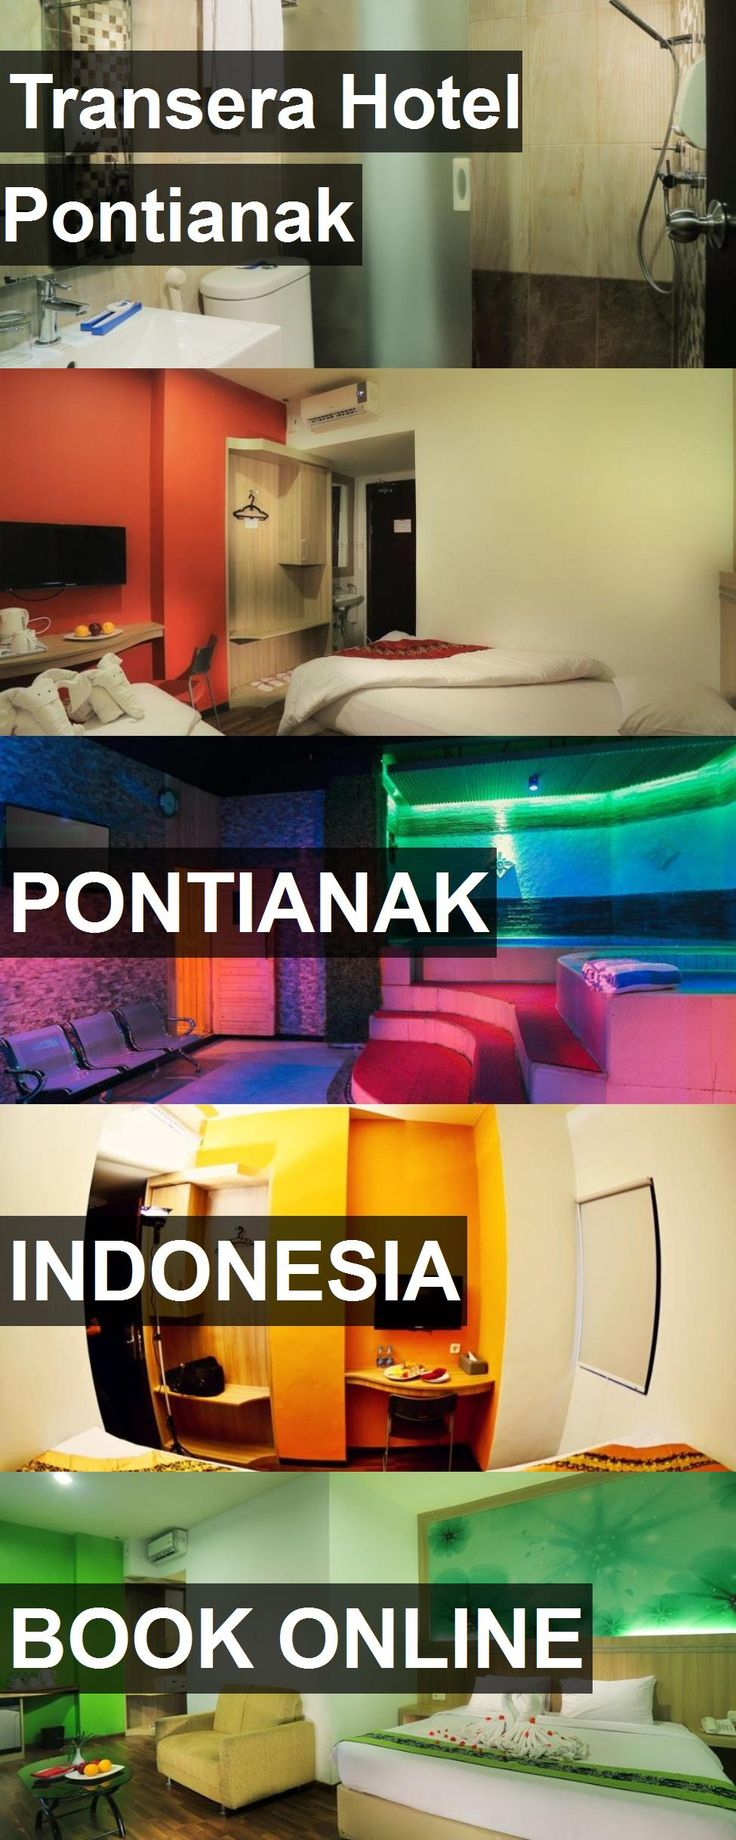 Hotel Transera Hotel Pontianak in Pontianak, Indonesia. For more information, photos, reviews and best prices please follow the link. #Indonesia #Pontianak #TranseraHotelPontianak #hotel #travel #vacation